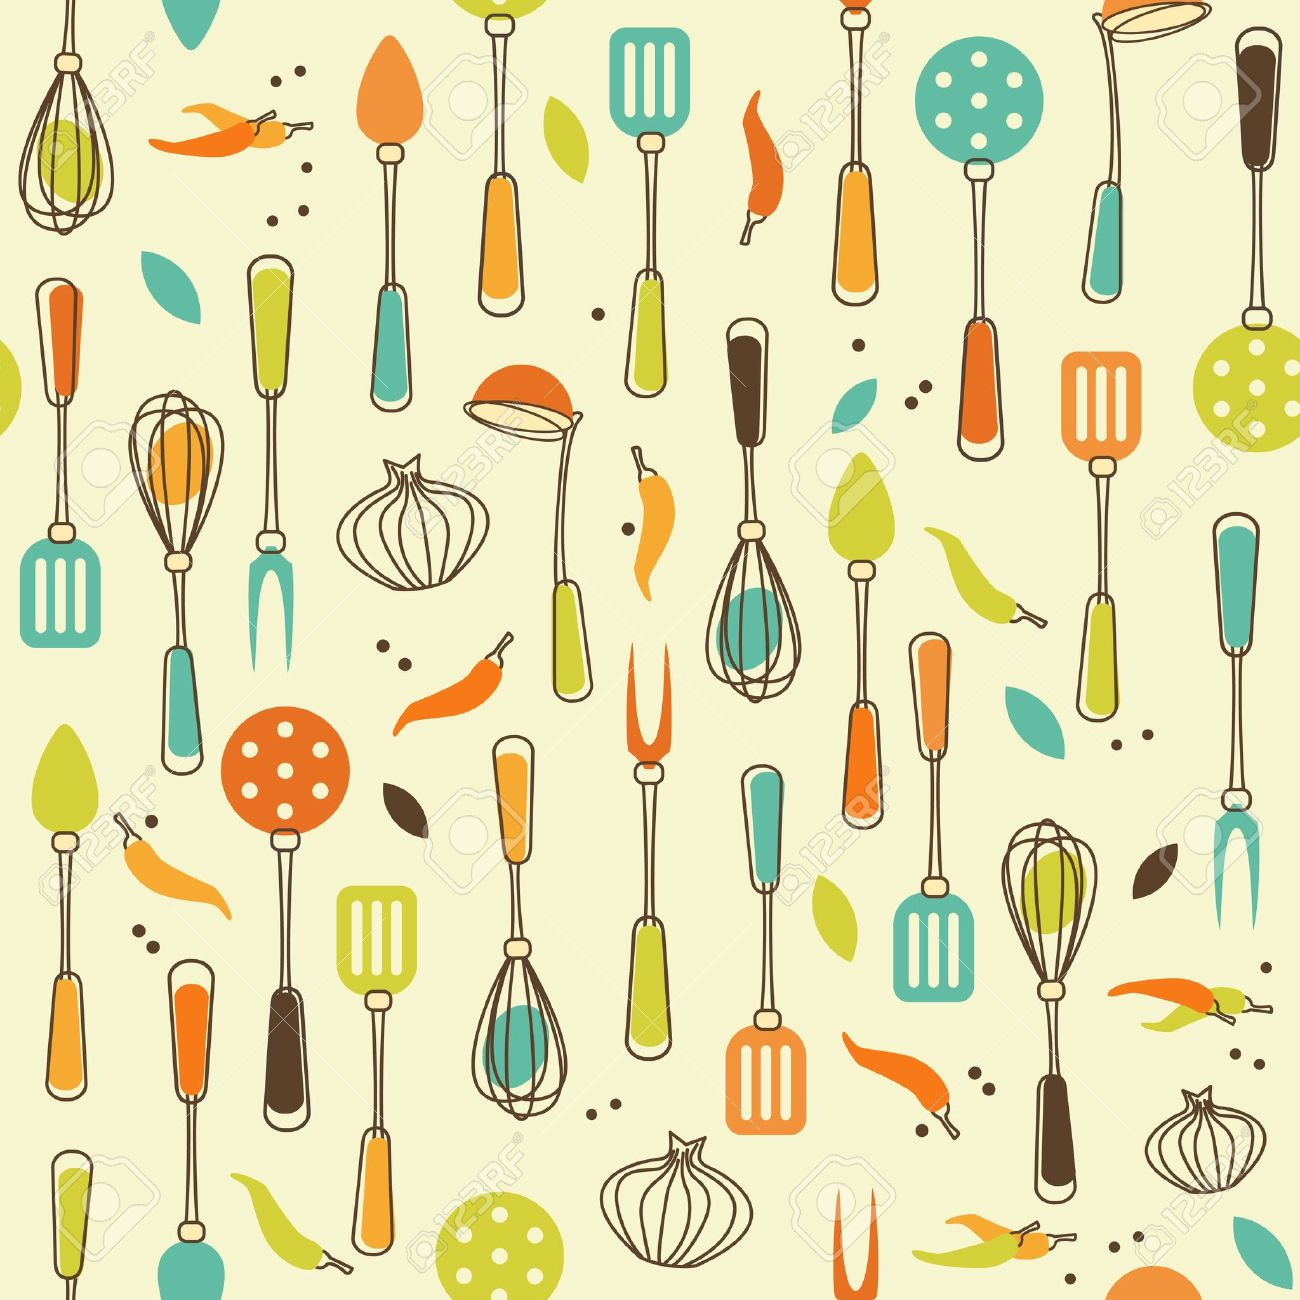 Vintage kitchen clipart yellow png free stock Free Vintage Kitchen Cliparts, Download Free Clip Art, Free ... png free stock